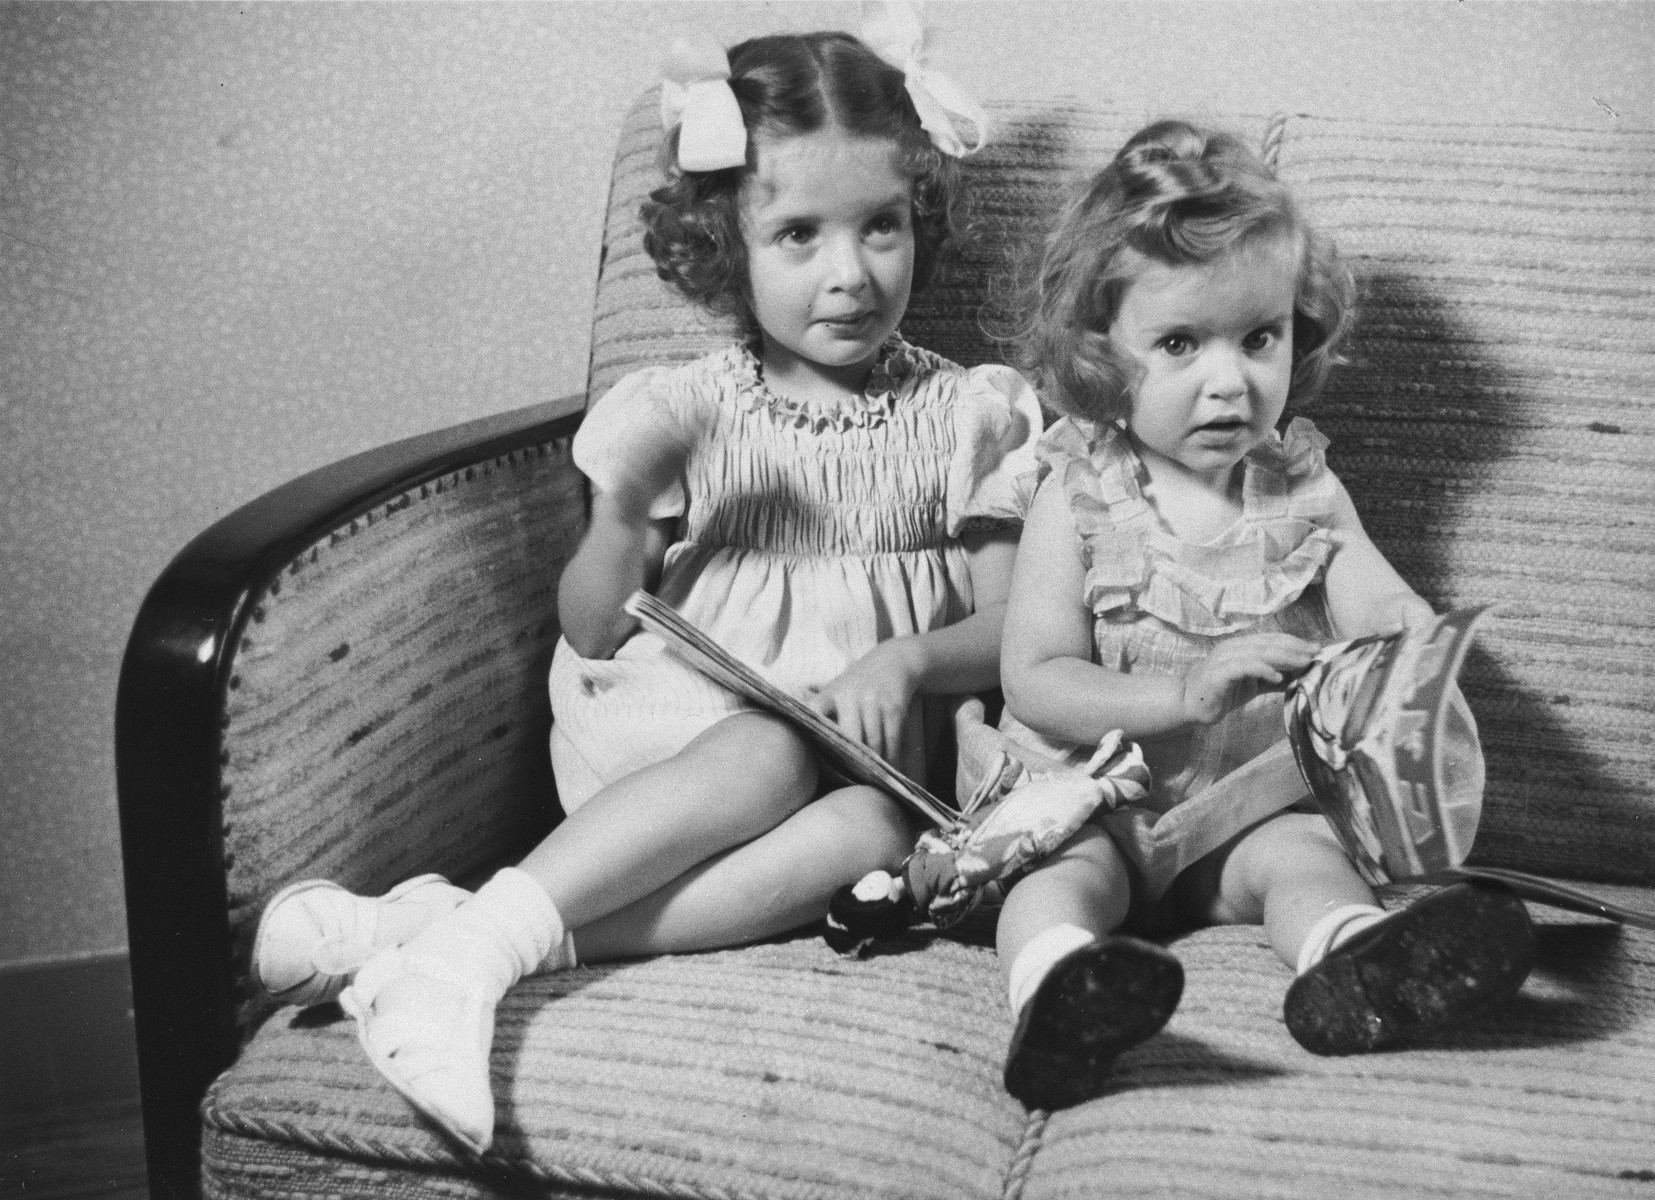 Two Jewish sisters, Eva and Leana Münzer, sit on a sofa in their home in The Hague.